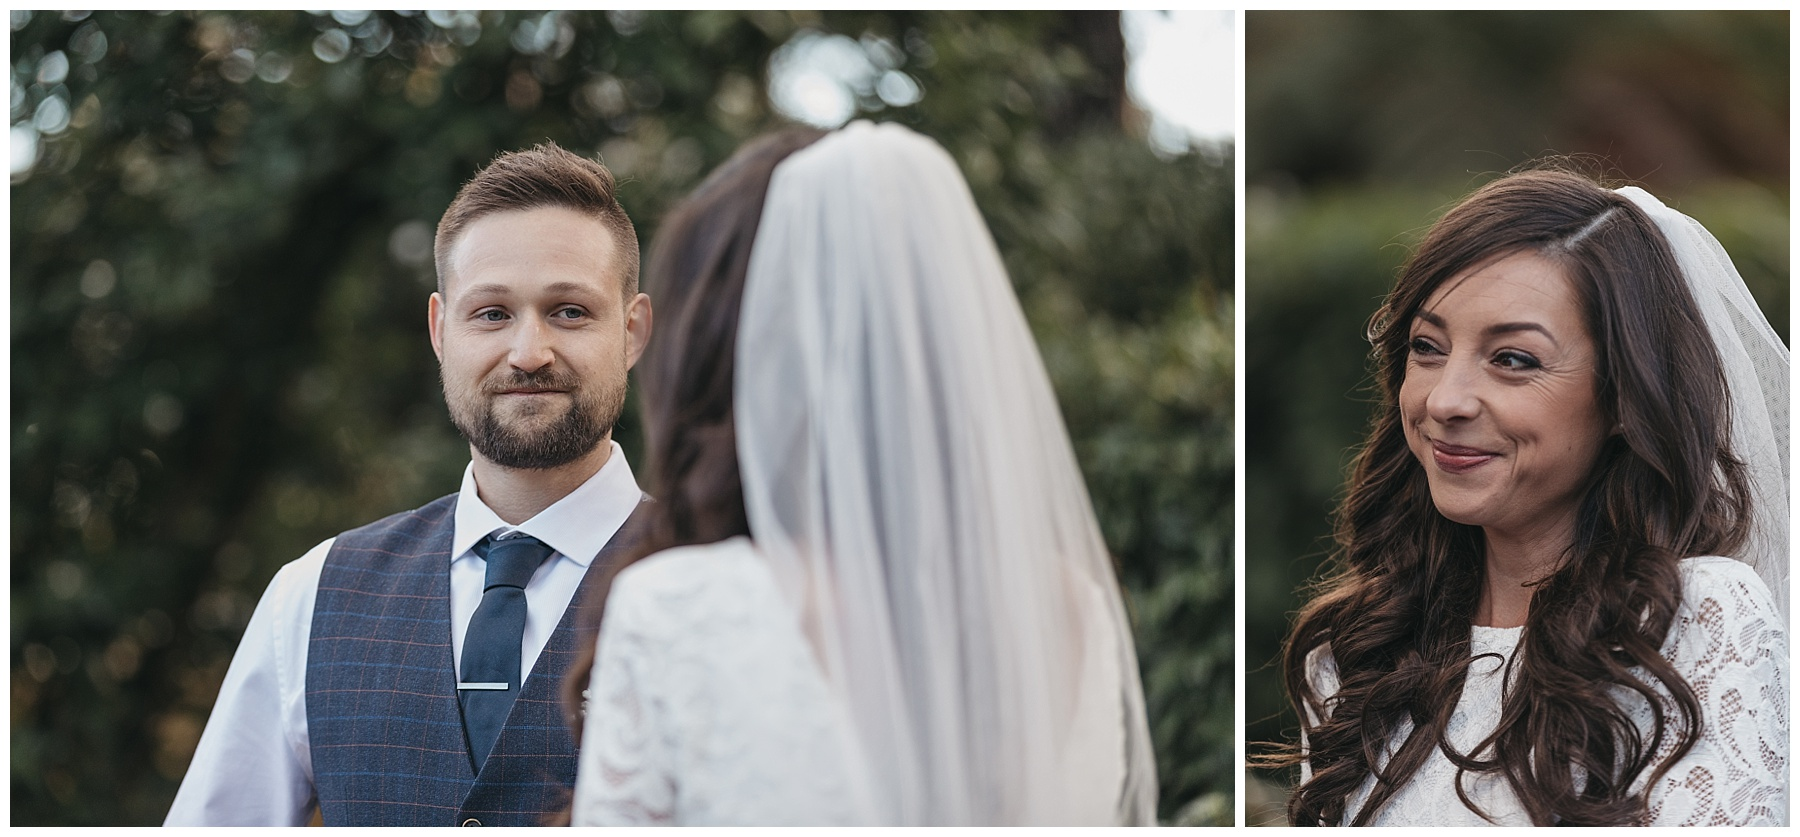 The bride and groom smiling at each other